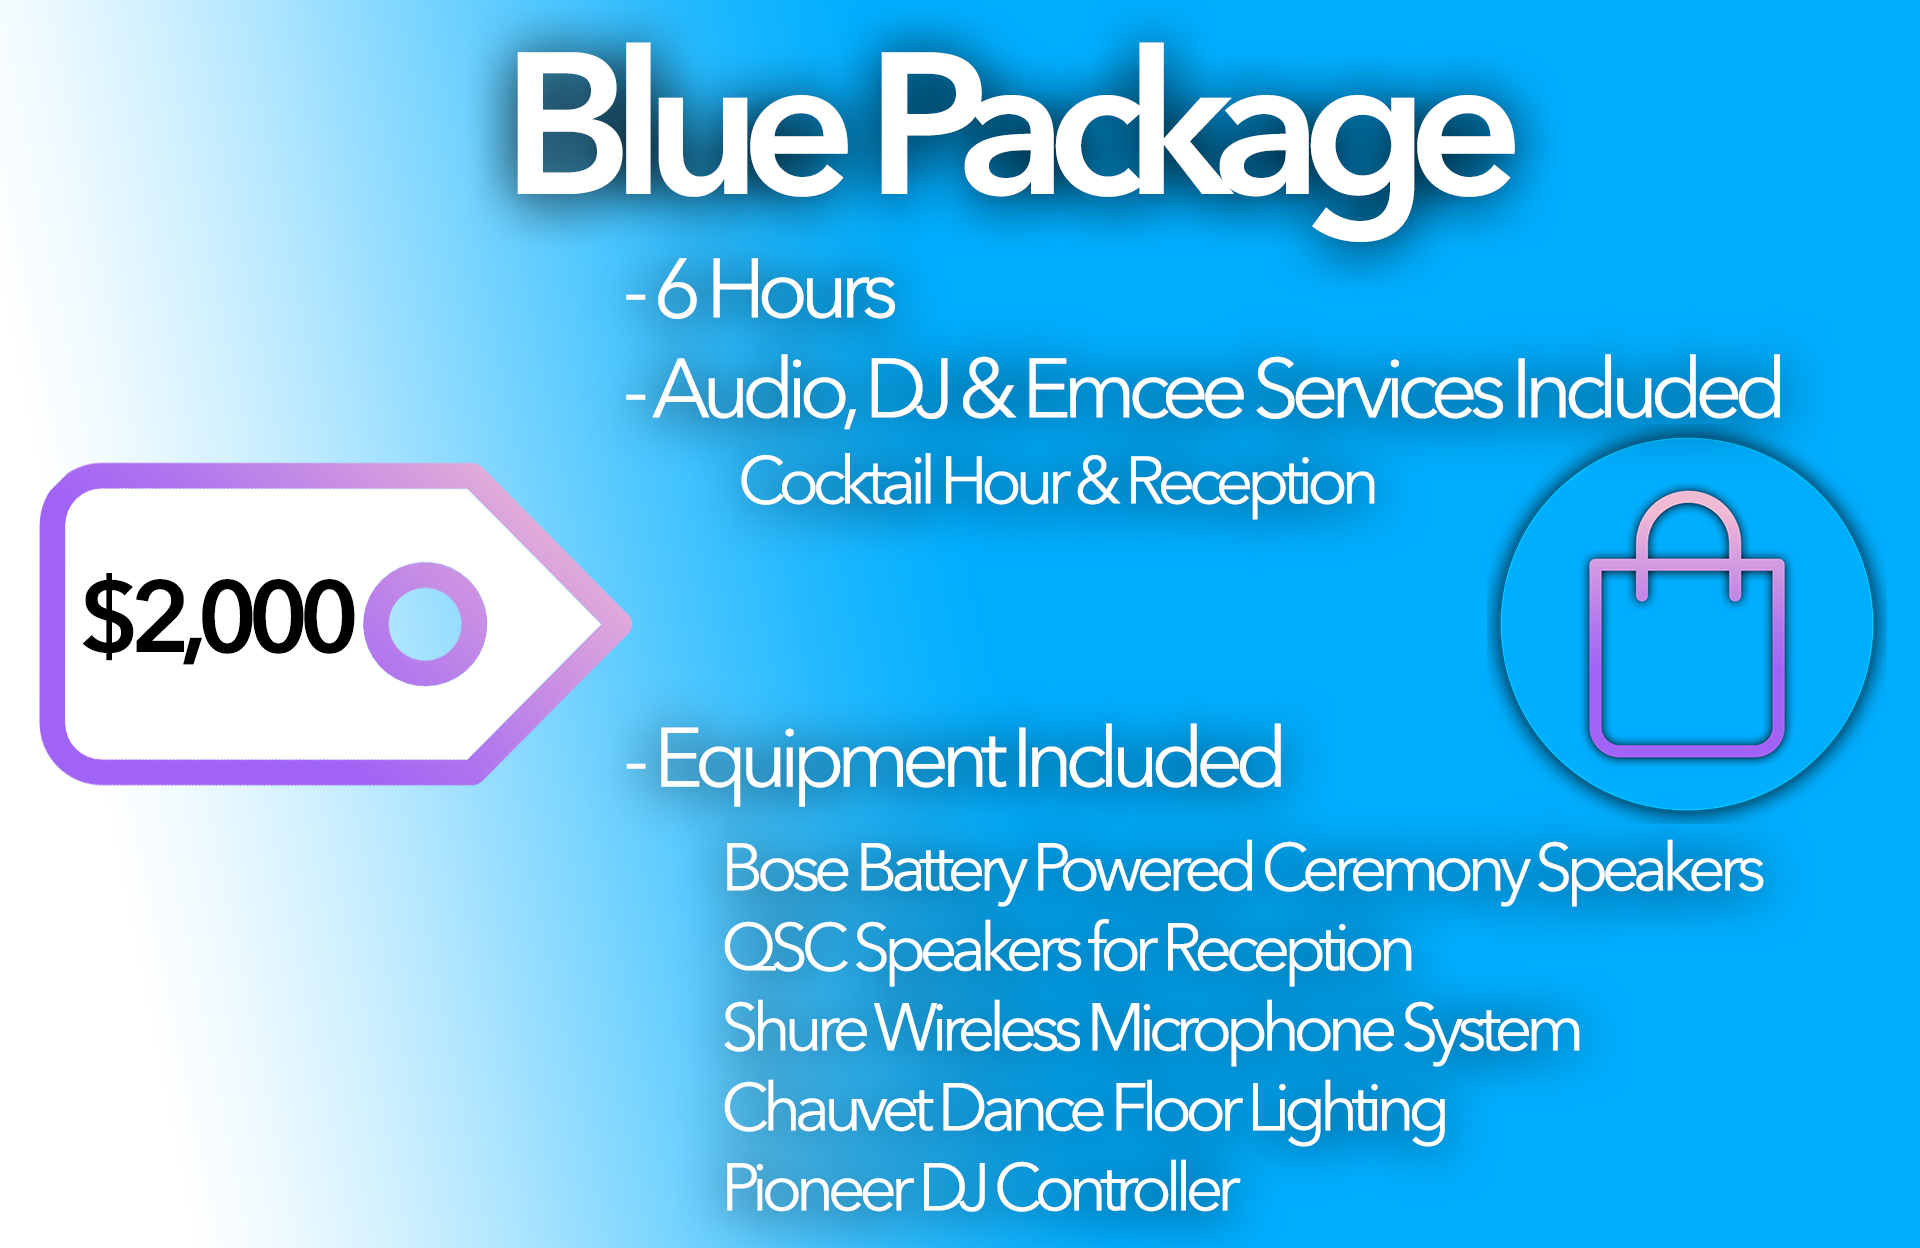 Blue Package Card 2023